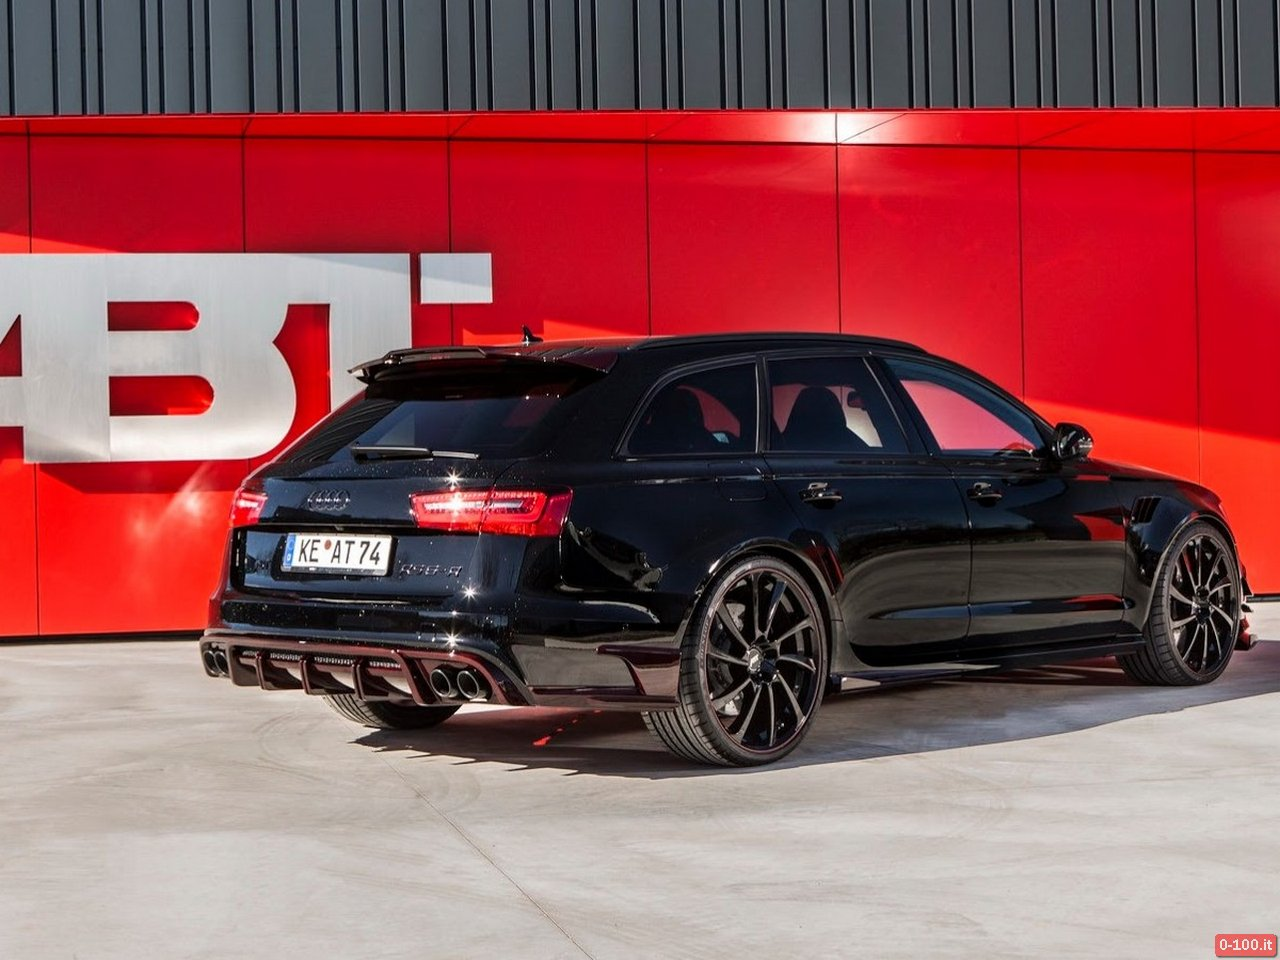 anteprima salone di ginevra 2014 abt audi rs6 r con 720 cv e 920 nm 0 100 motori orologi. Black Bedroom Furniture Sets. Home Design Ideas